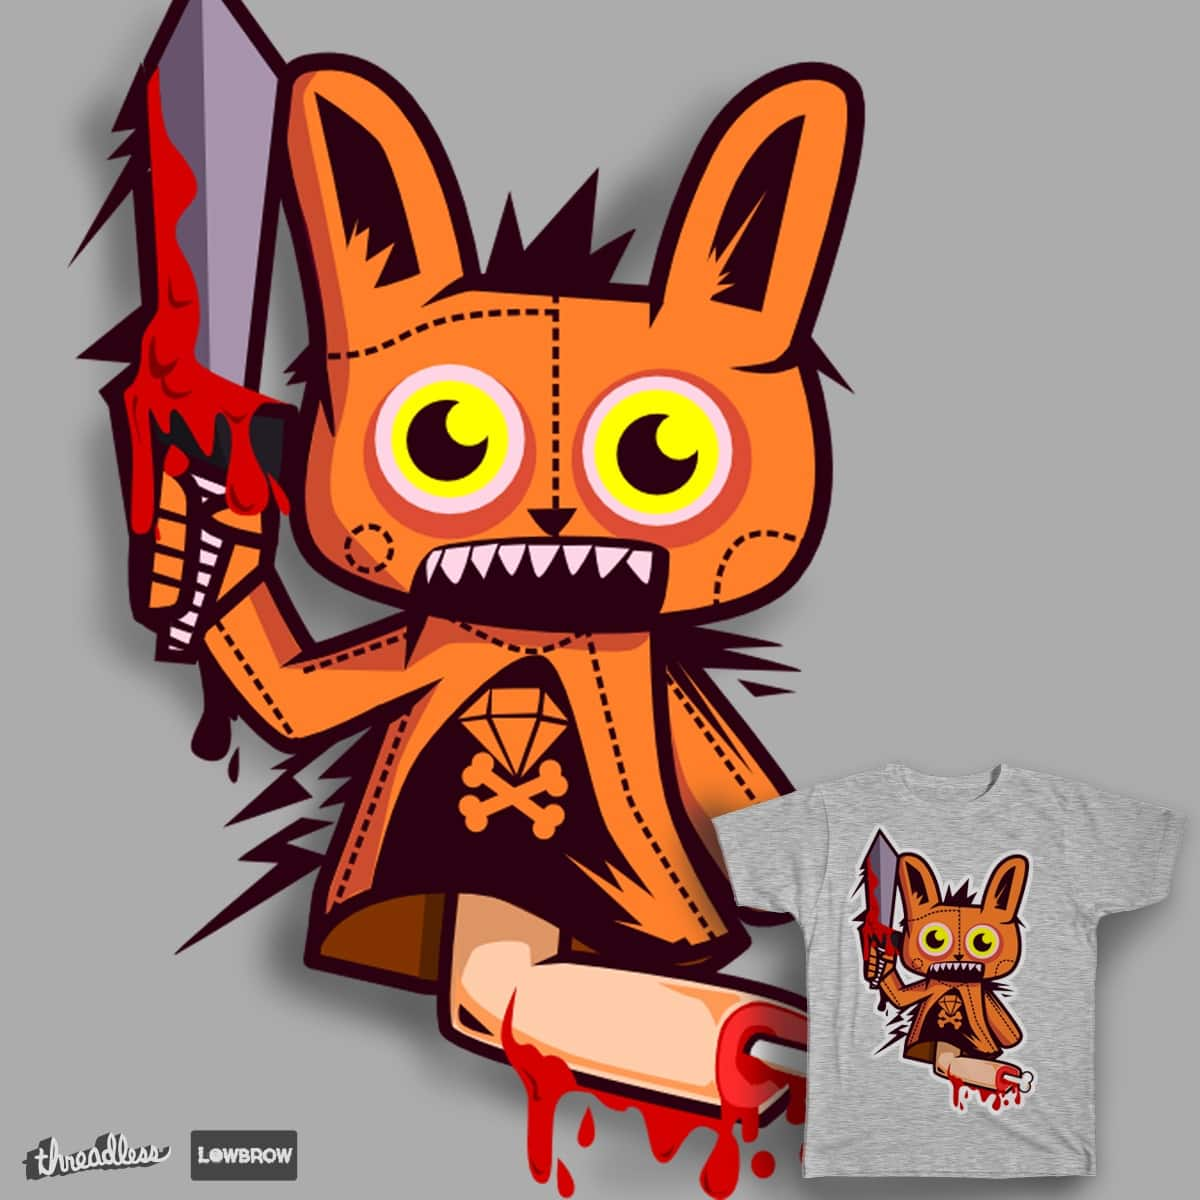 rebellion by jiroo on Threadless